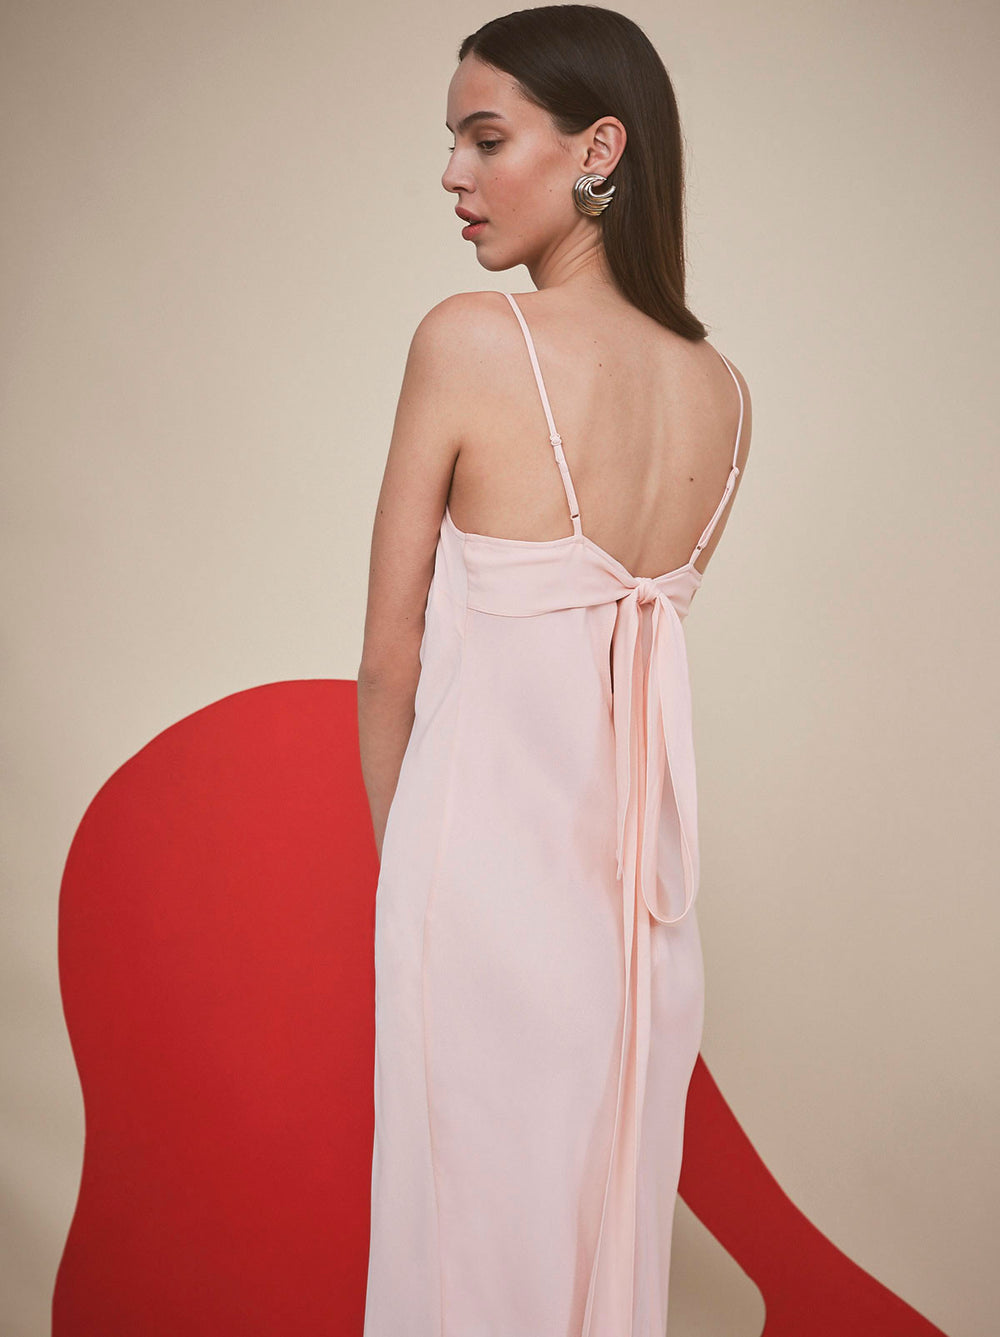 Ondine Pink Slip Cocktail Dress by KITRI Studio